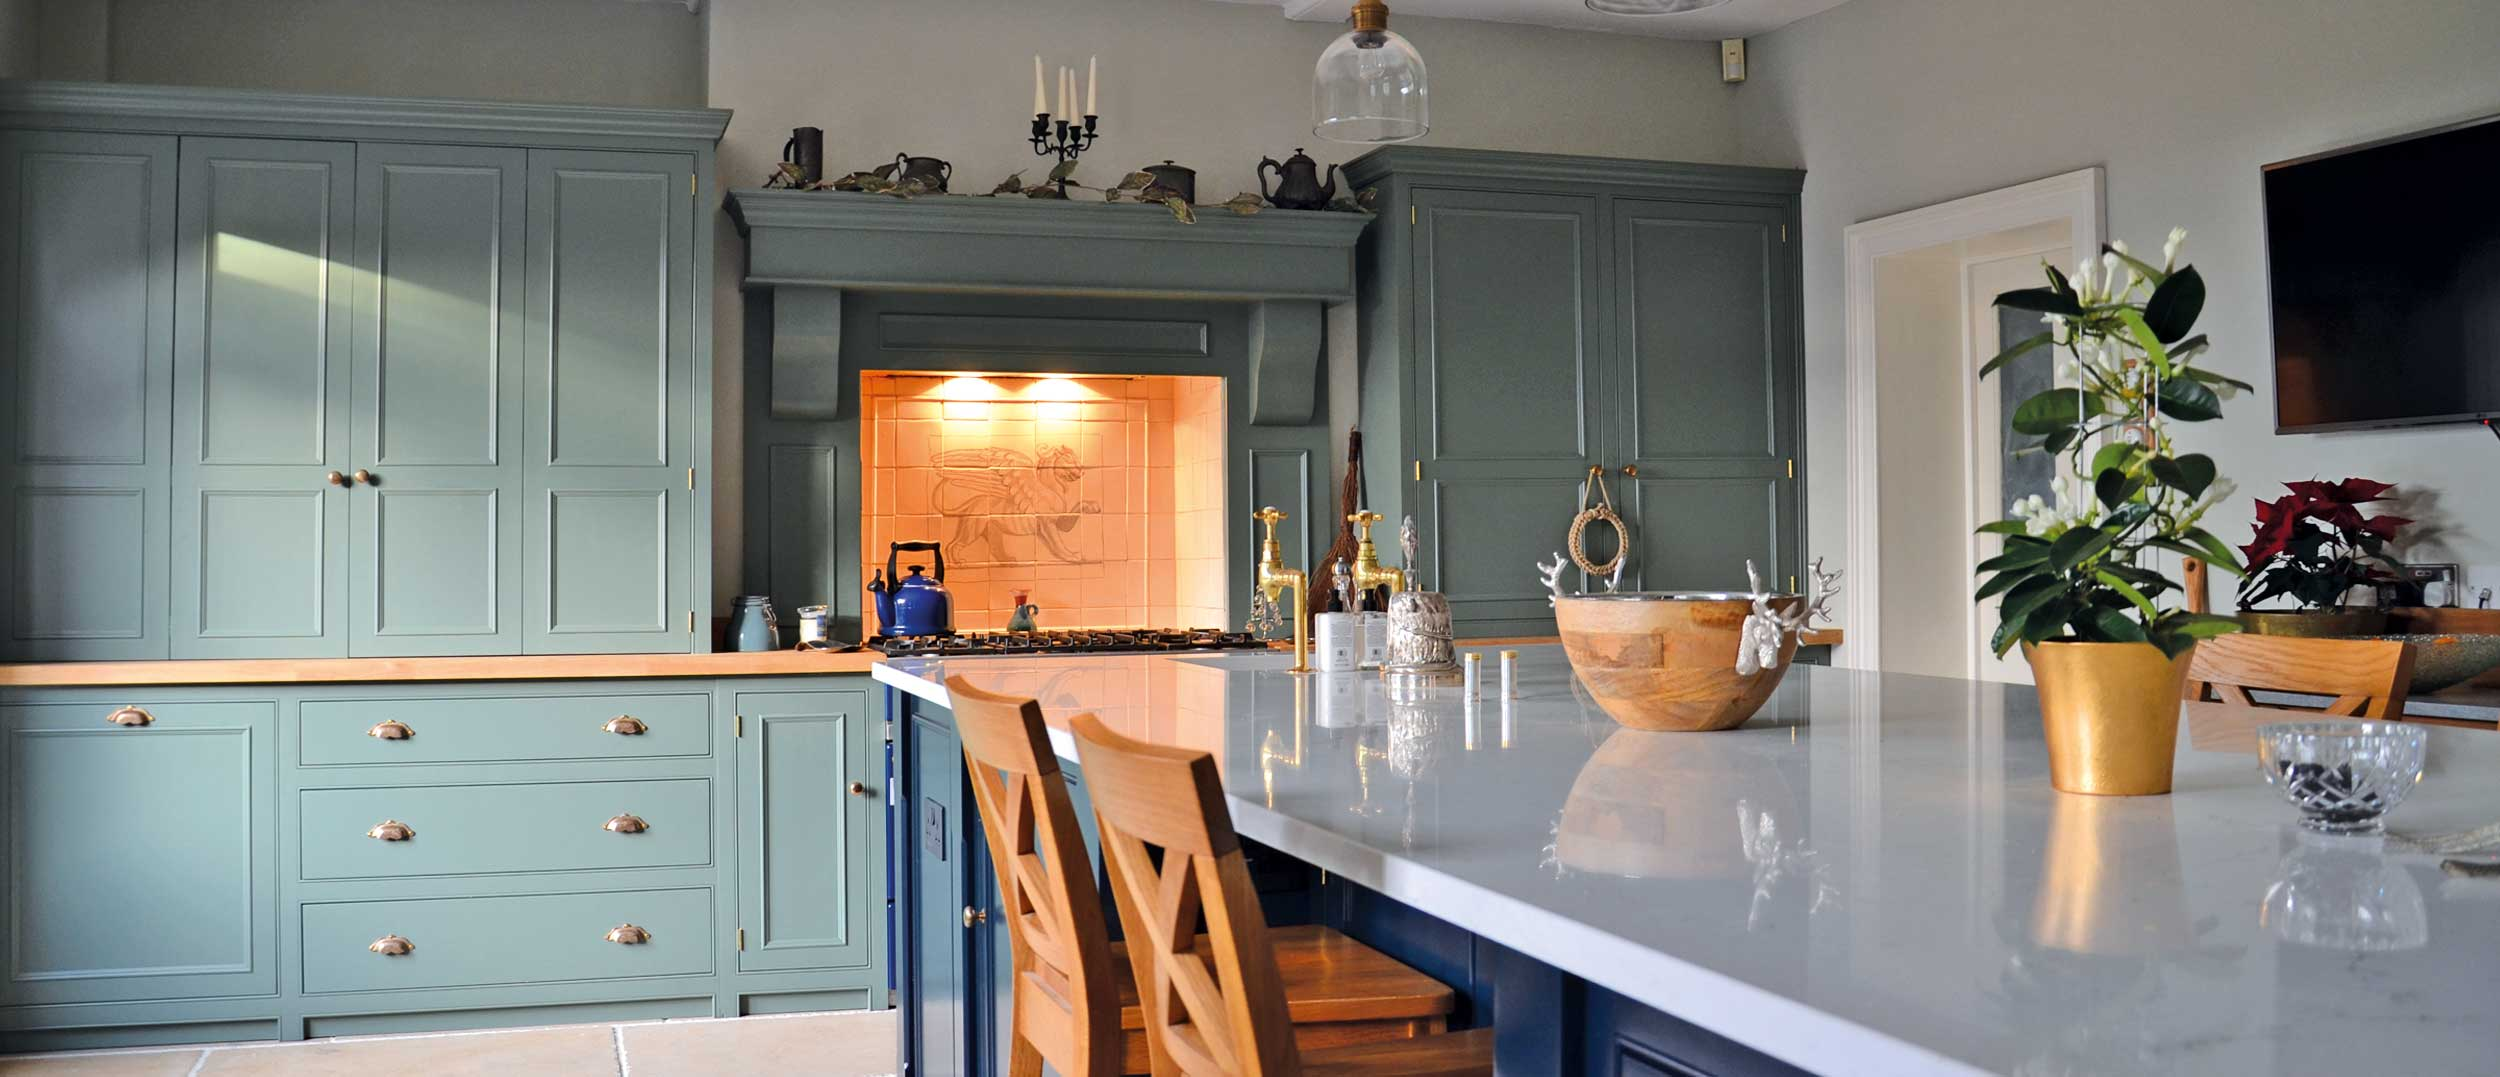 Kitchen Cupboard Painters Leicestershire Kitchen Units Doors And Cupboards Made With Solid Wood From The